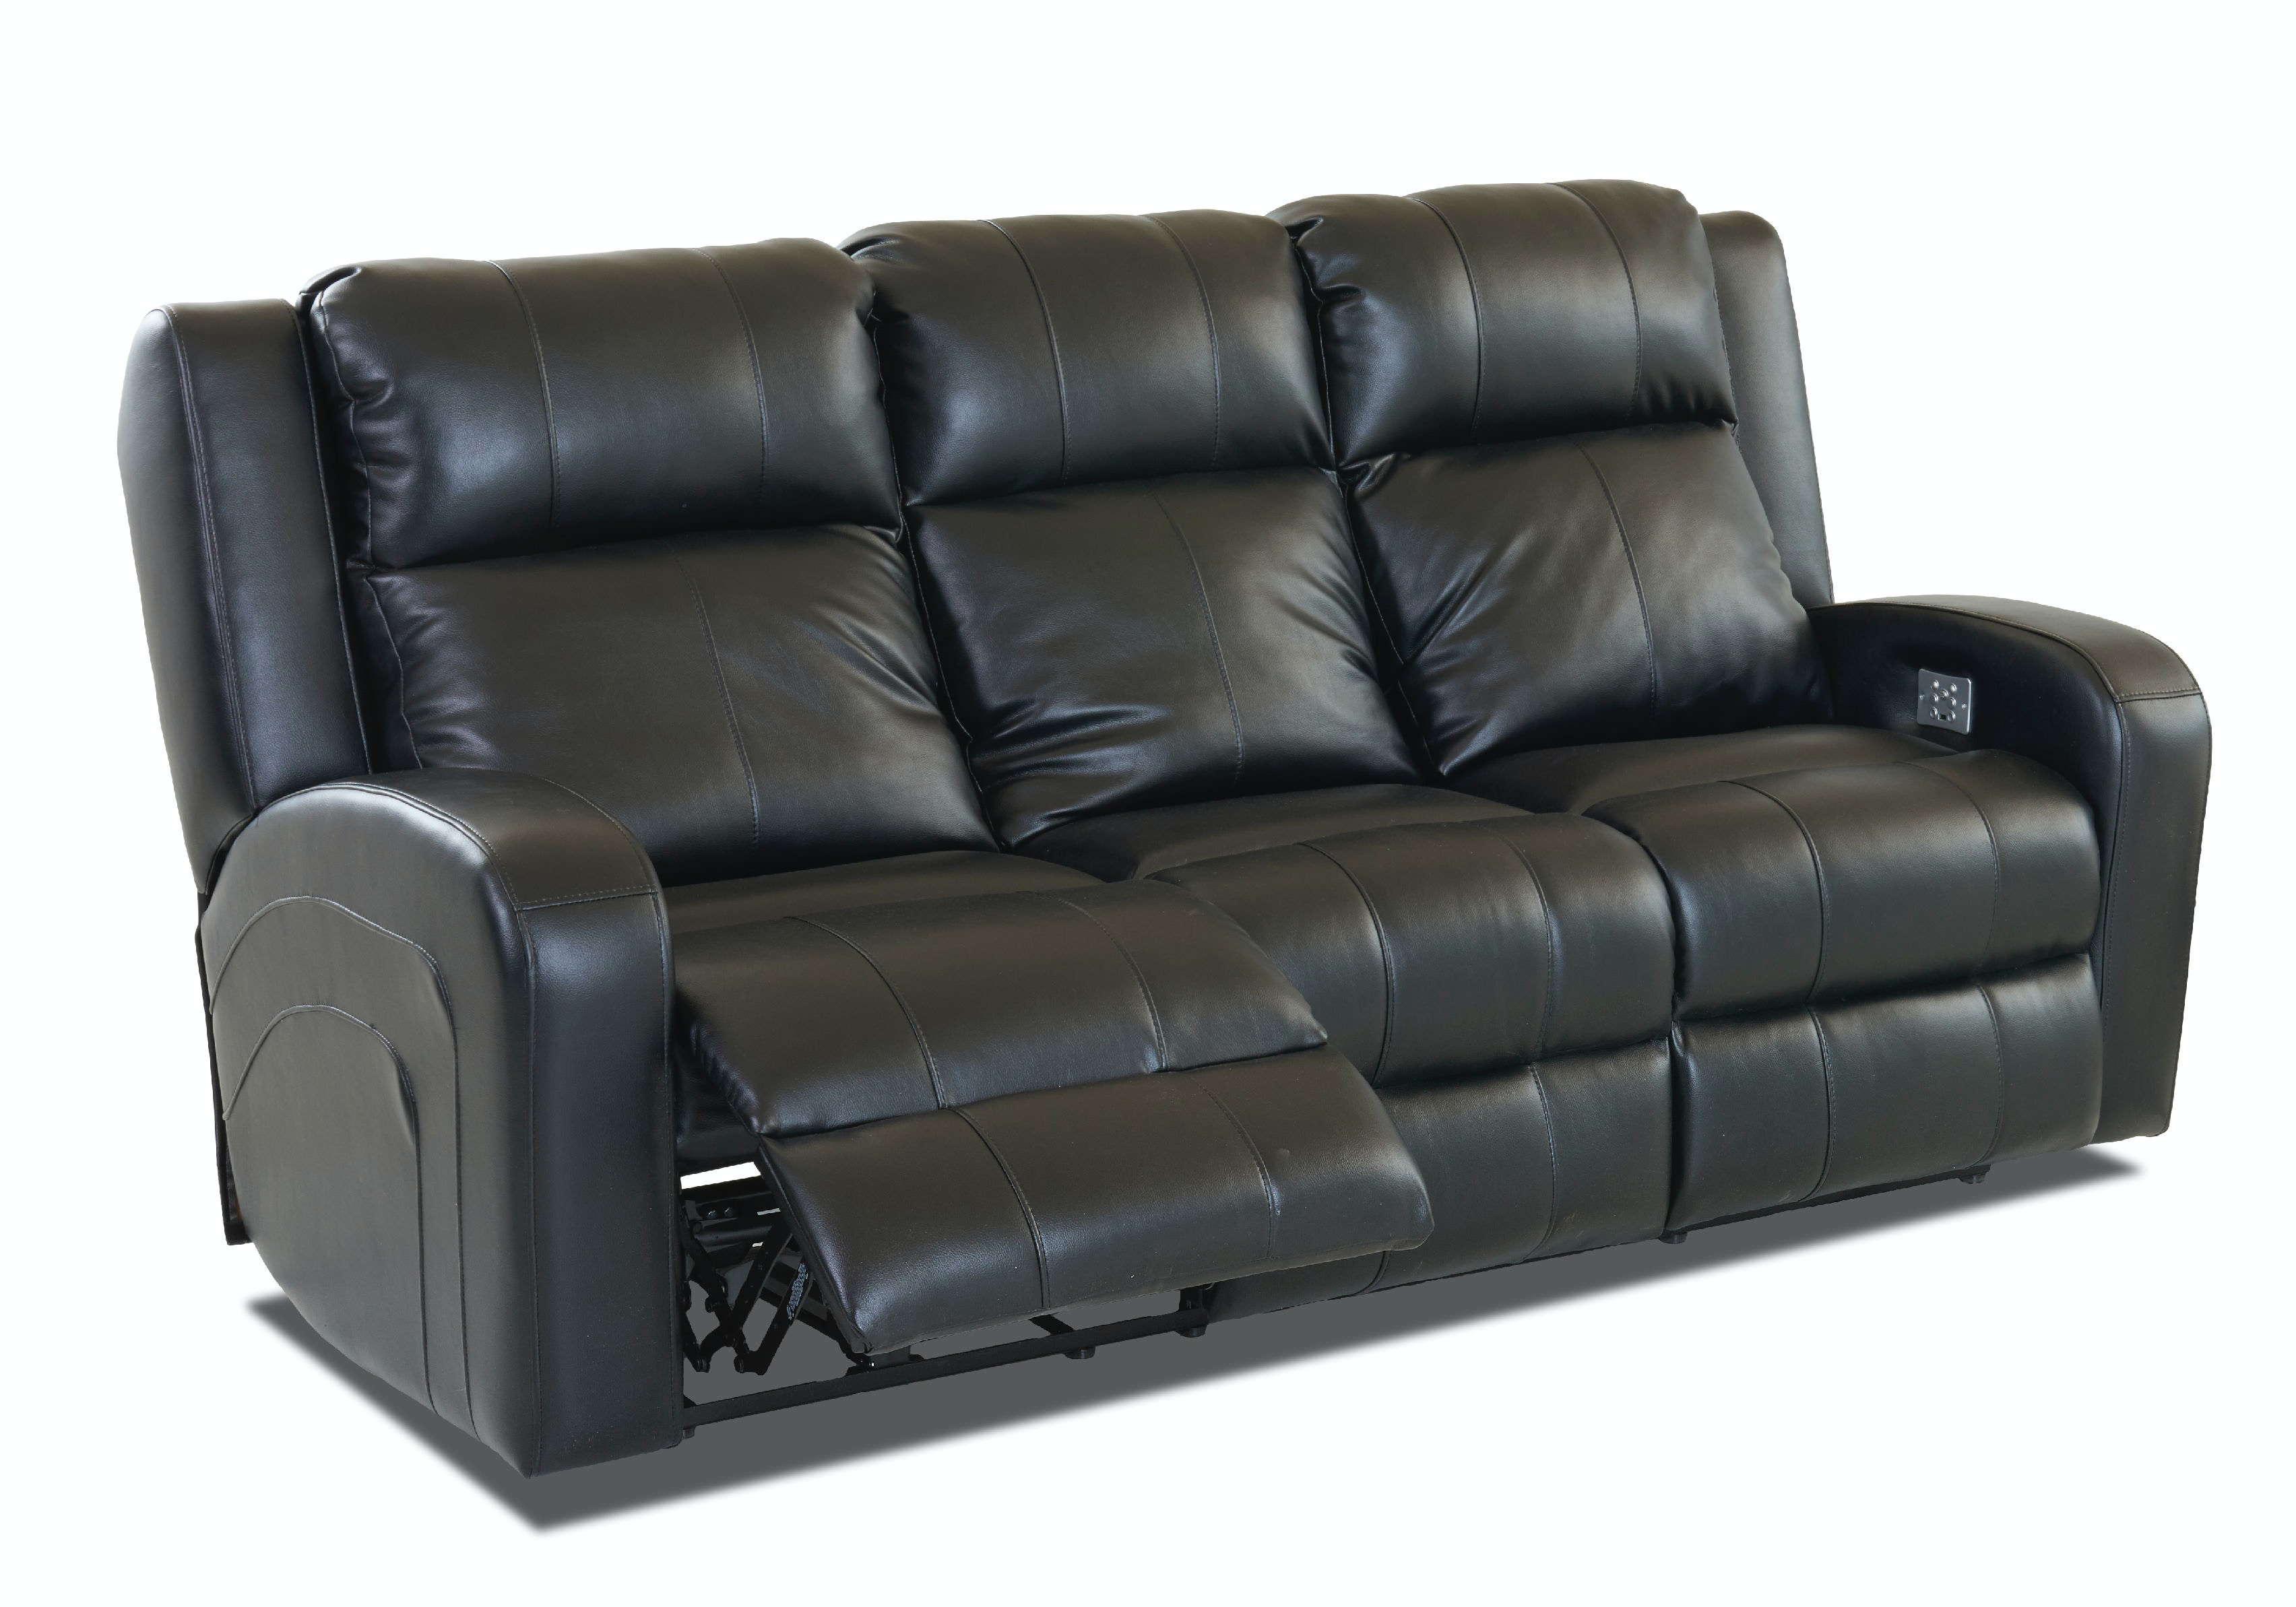 robinson and leather sofa caramel for sale klaussner living room 64943 8 pwrs